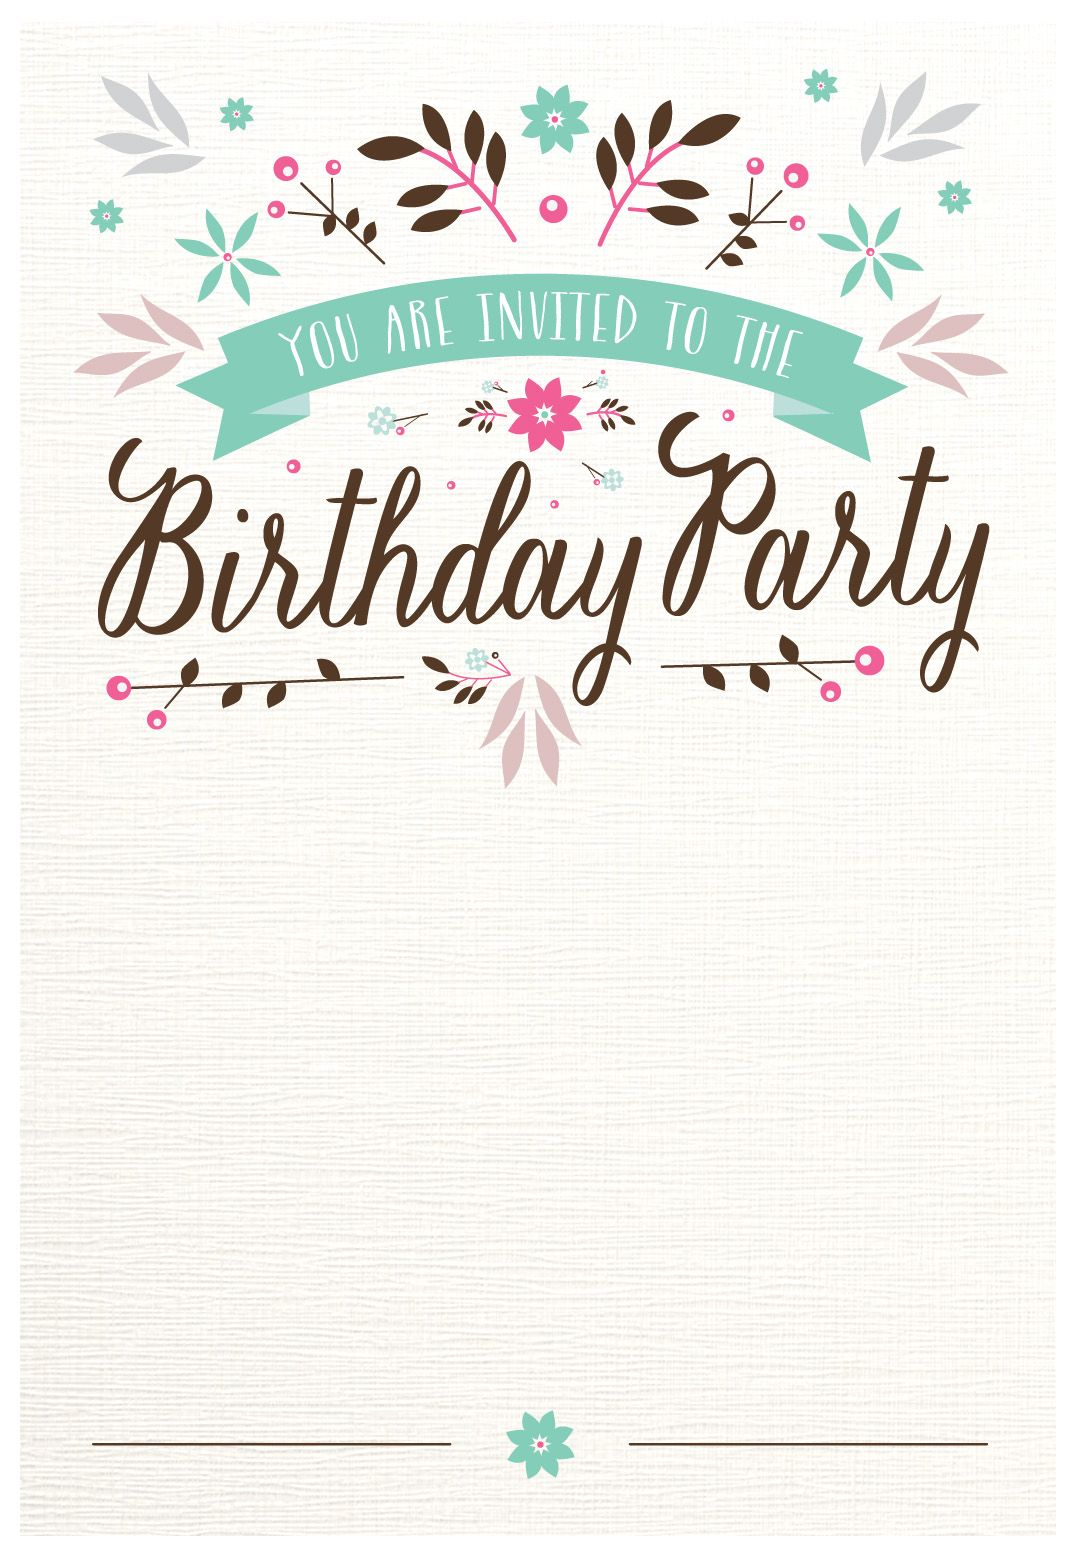 Flat Floral Free Printable Birthday Invitation Template - Party invitation template: free printable birthday party invitation templates